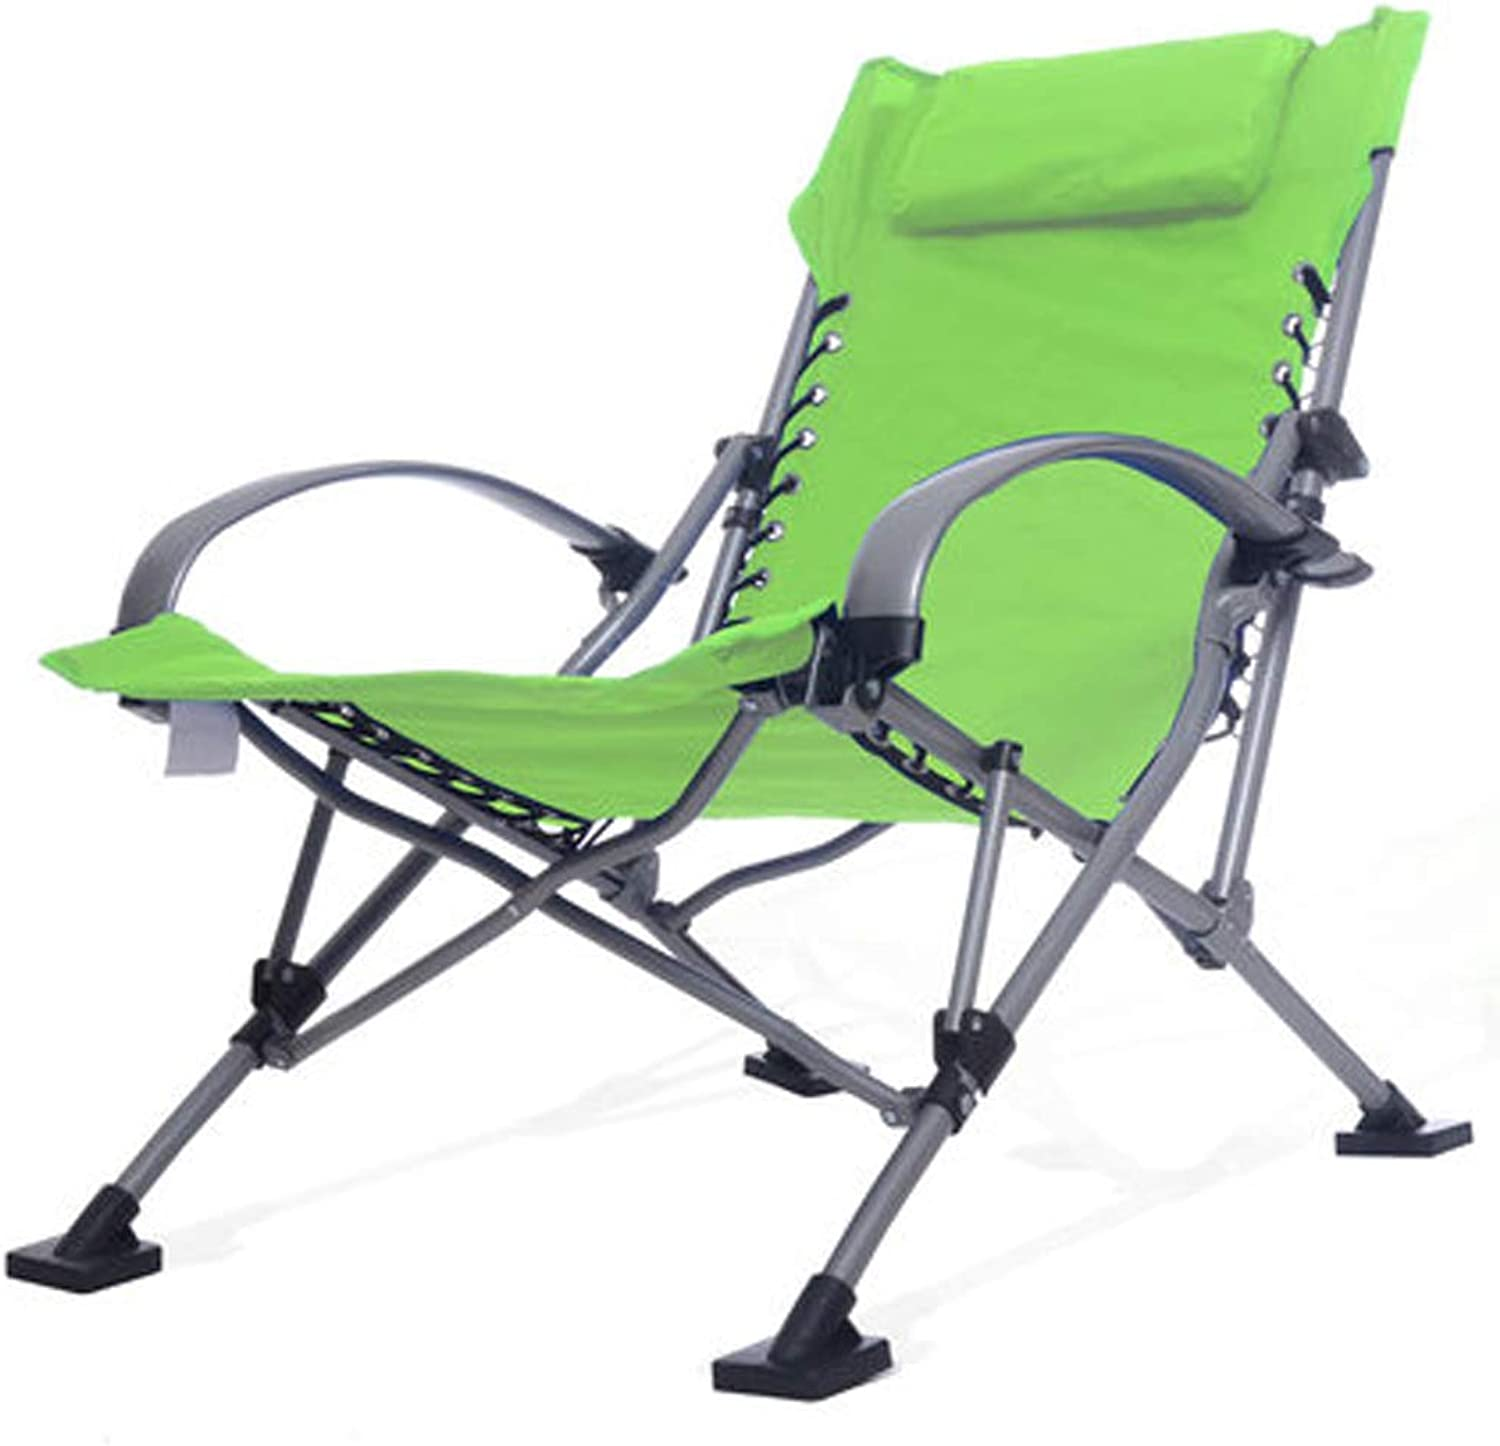 Camping Chair Portable Lightweight Folding, Outdoor Beach BBQ Camp Fishing Picnic Hiking Backyard Backpacking Sports Hunting Chairs Heavy, Net Weight 5 kg